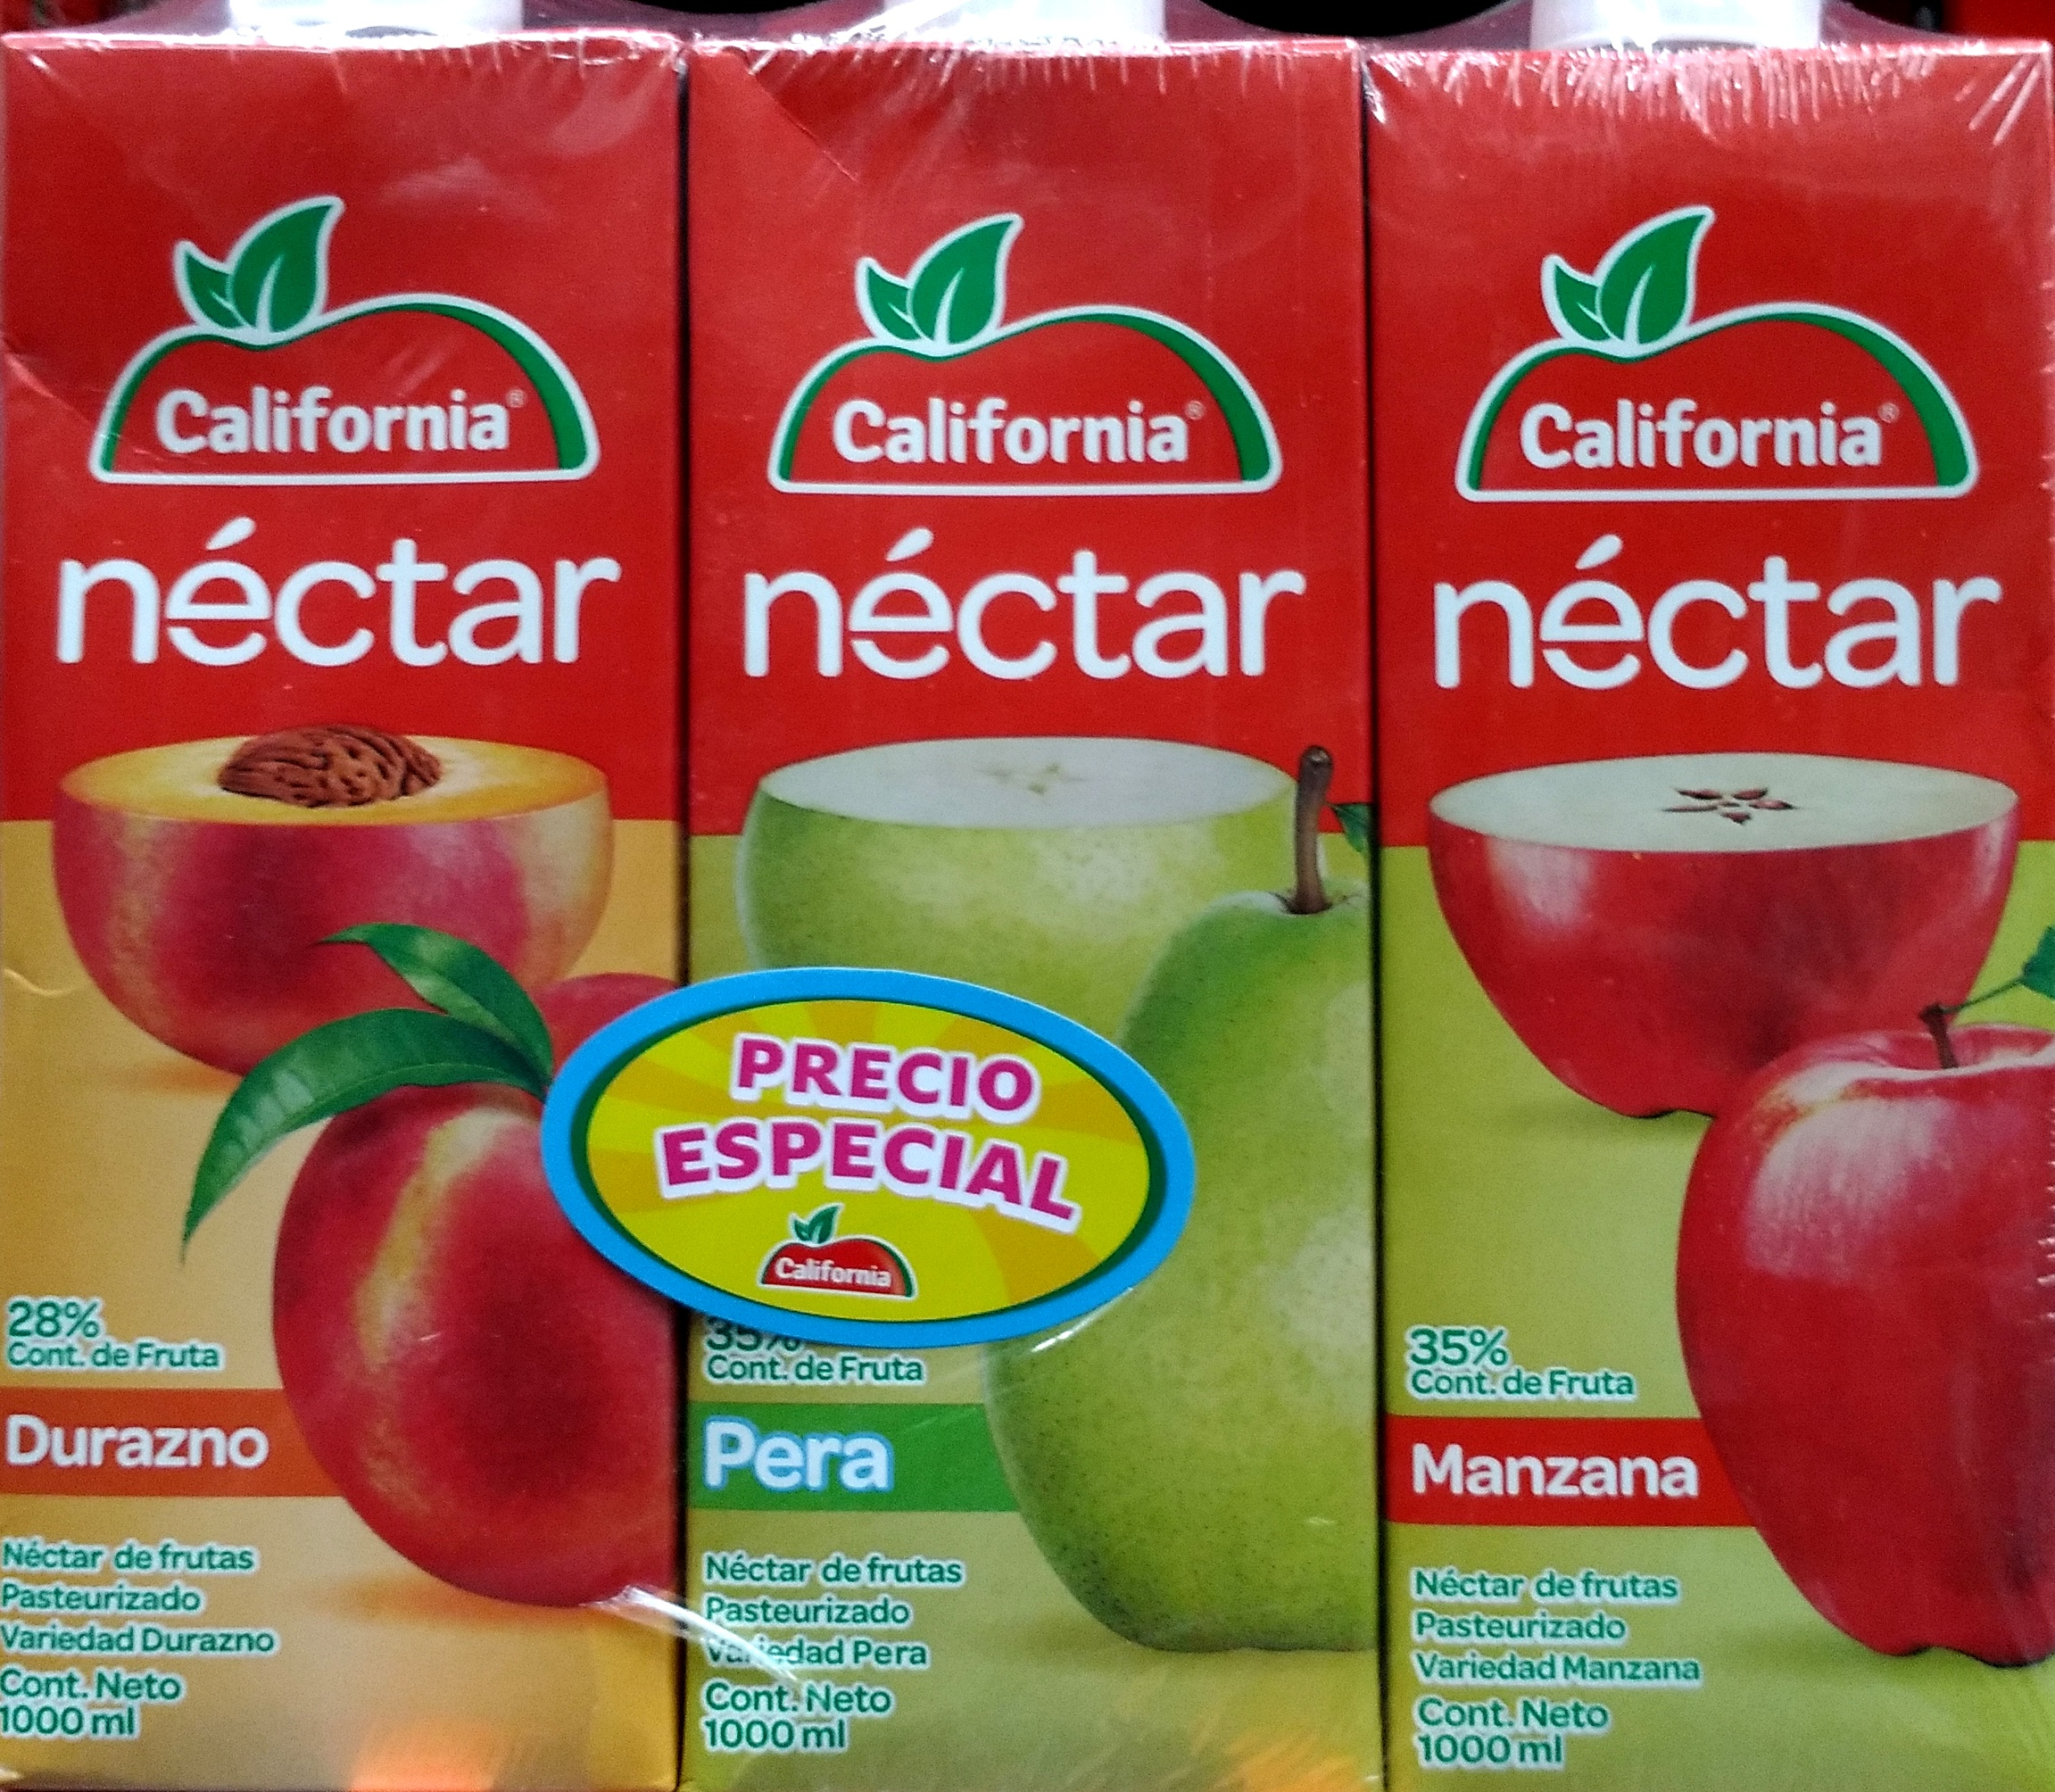 Nectar California 1000ml Tetra Pack x3